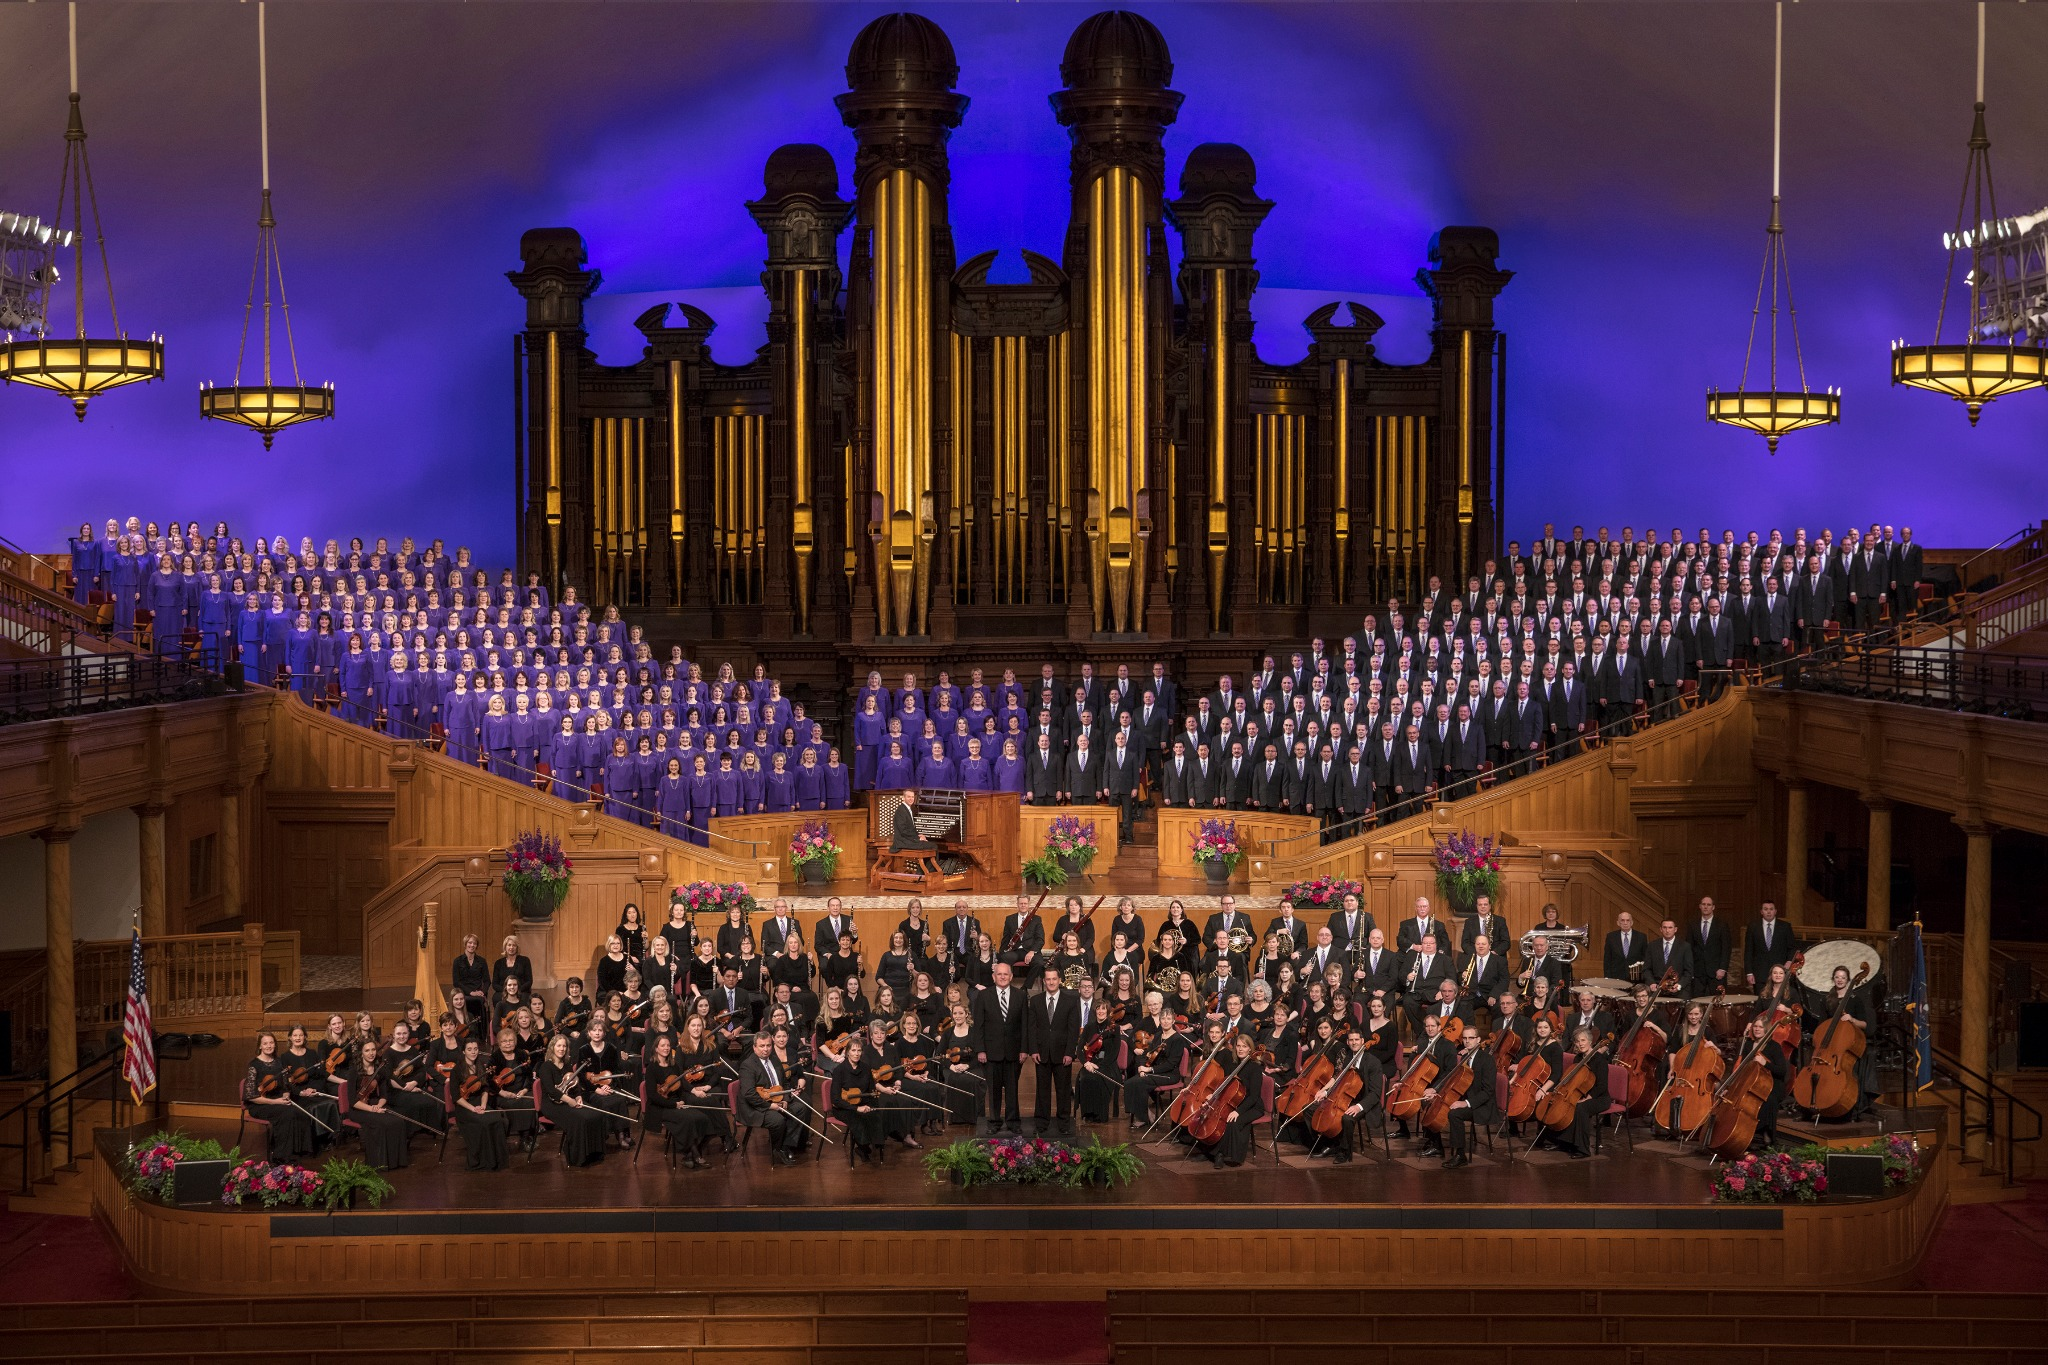 The Tabernacle Choir and Orchestra at Temple Square in the historic Salt Lake Tabernacle. They will perform during President Nelson's birthday celebration on Sept. 6, 2019.